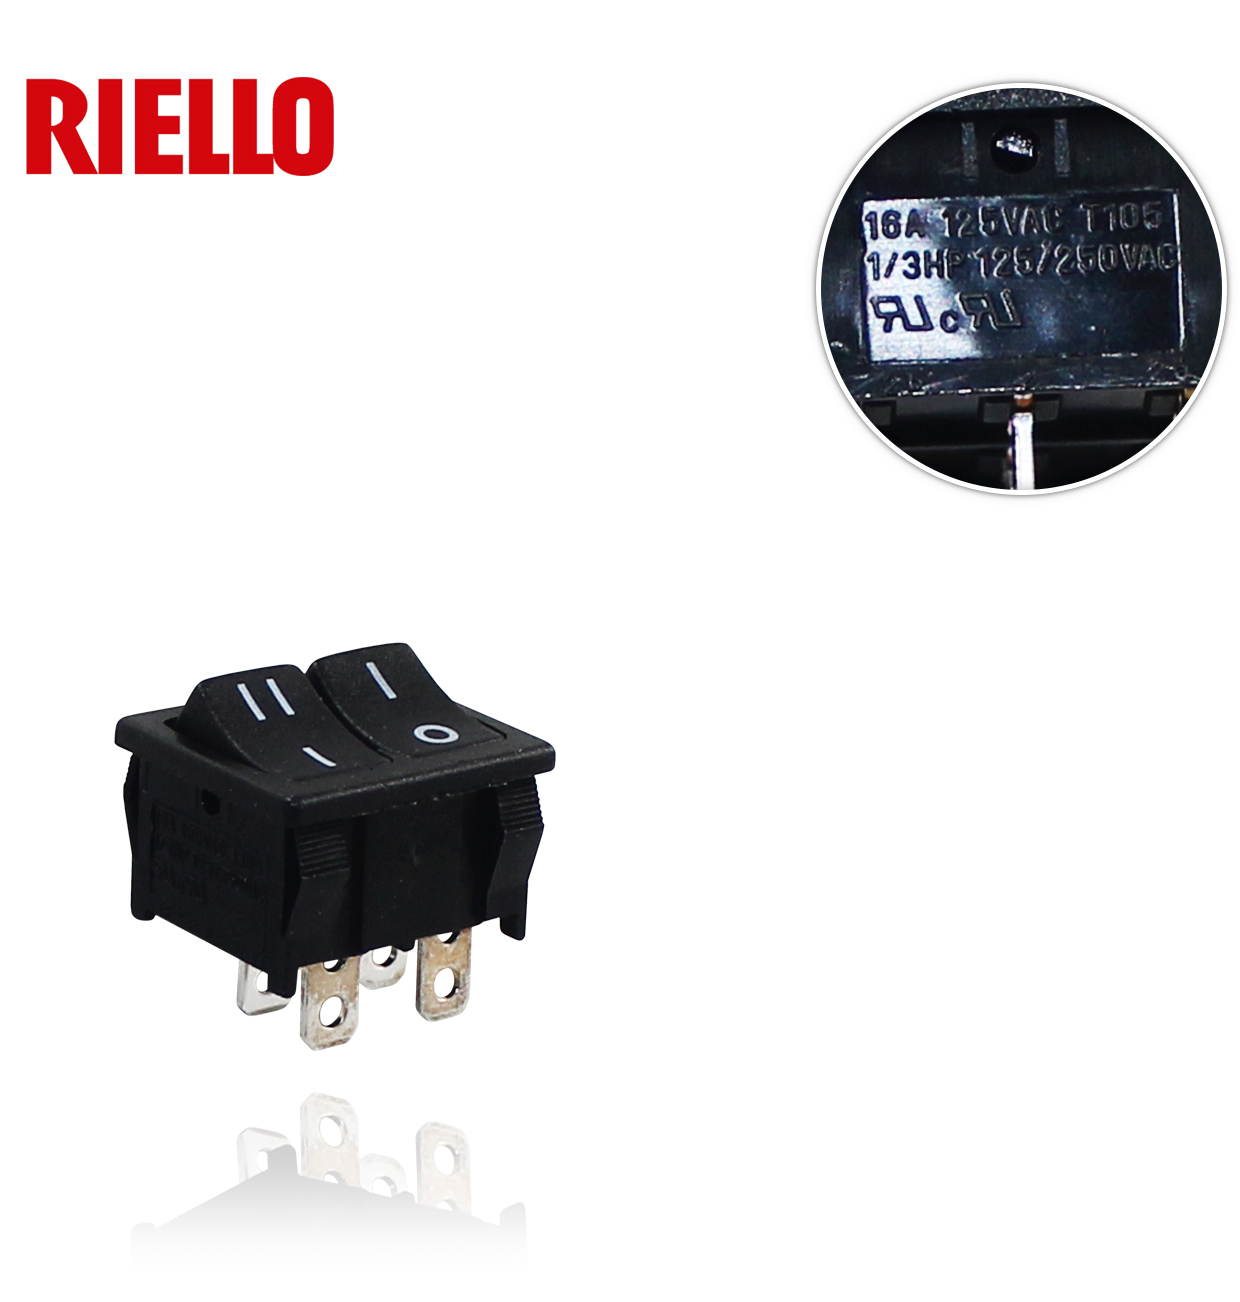 INTERRUPTOR SWITCH RIELLO 3003770